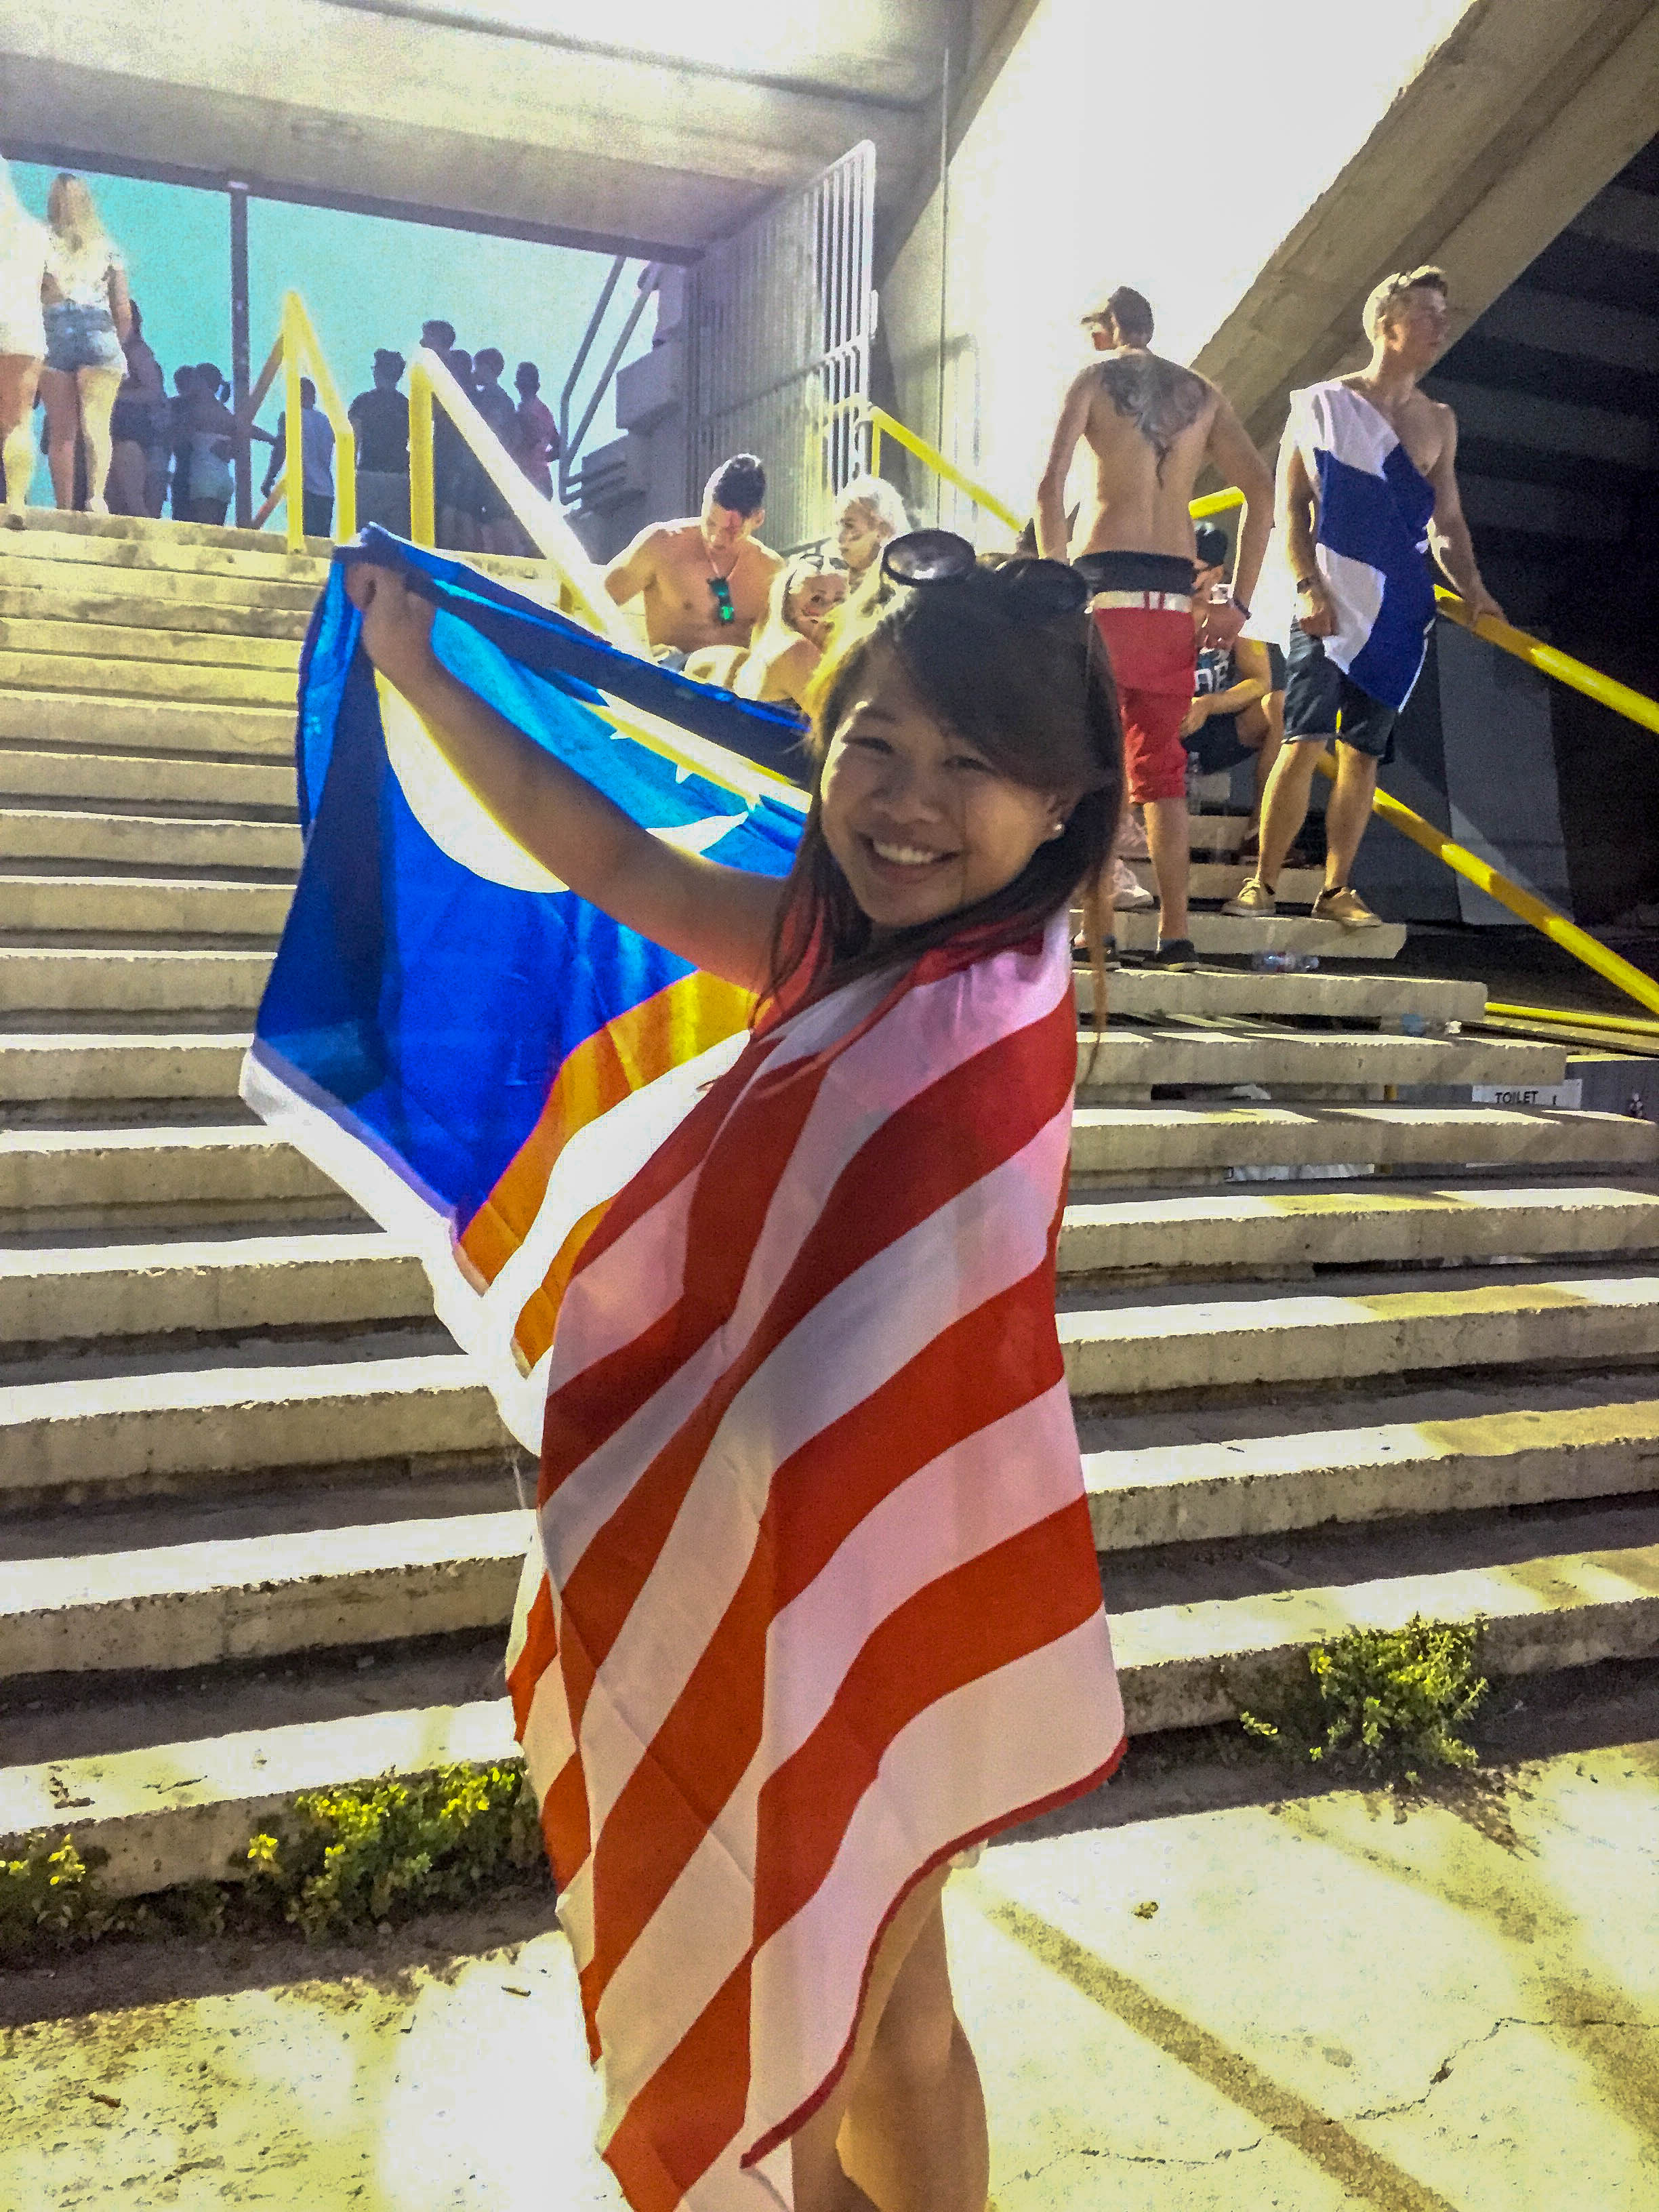 The Malaysian flag and I